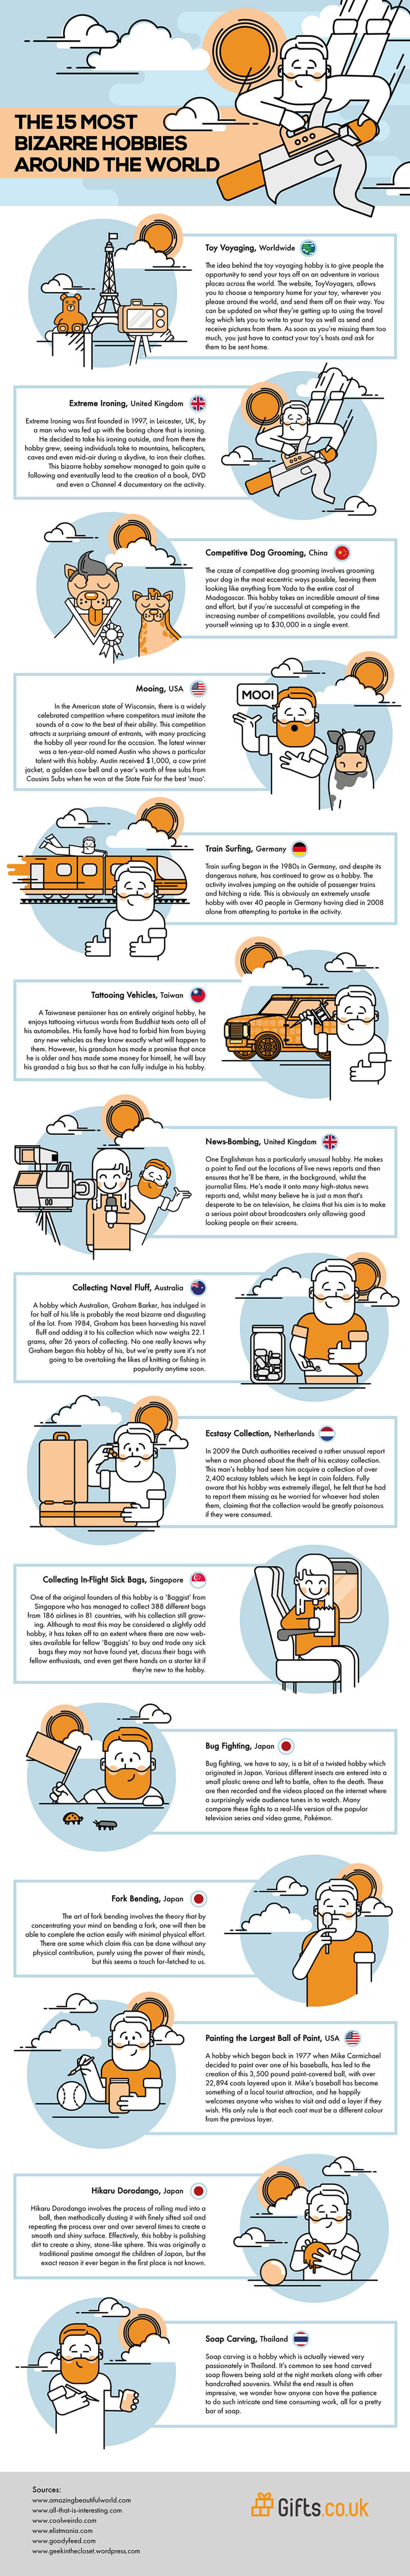 Infographic: The 15 most bizarre hobbies around the world